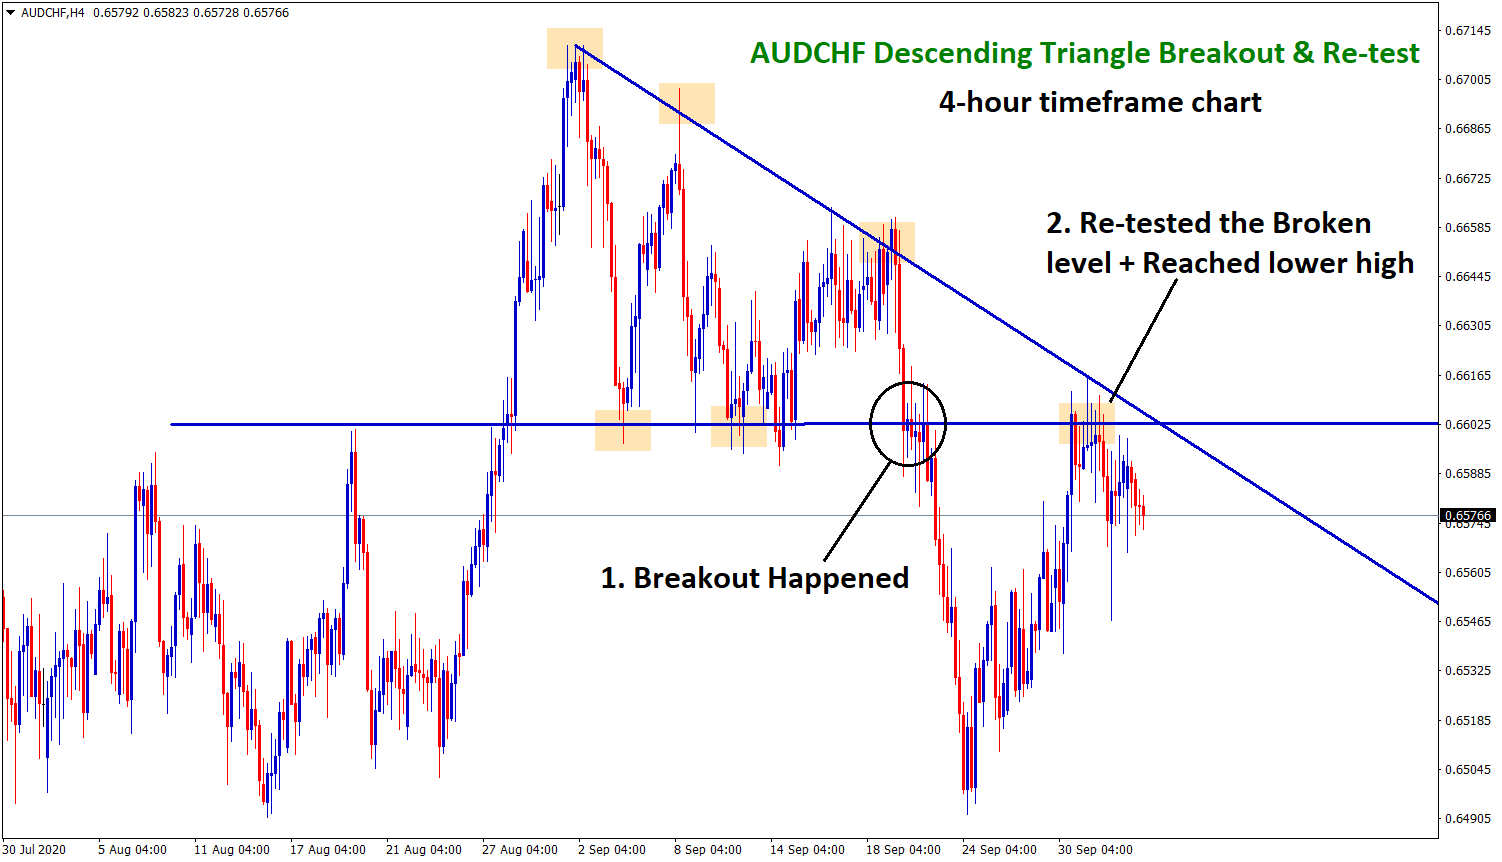 descending Triangle breakout and retest strategy